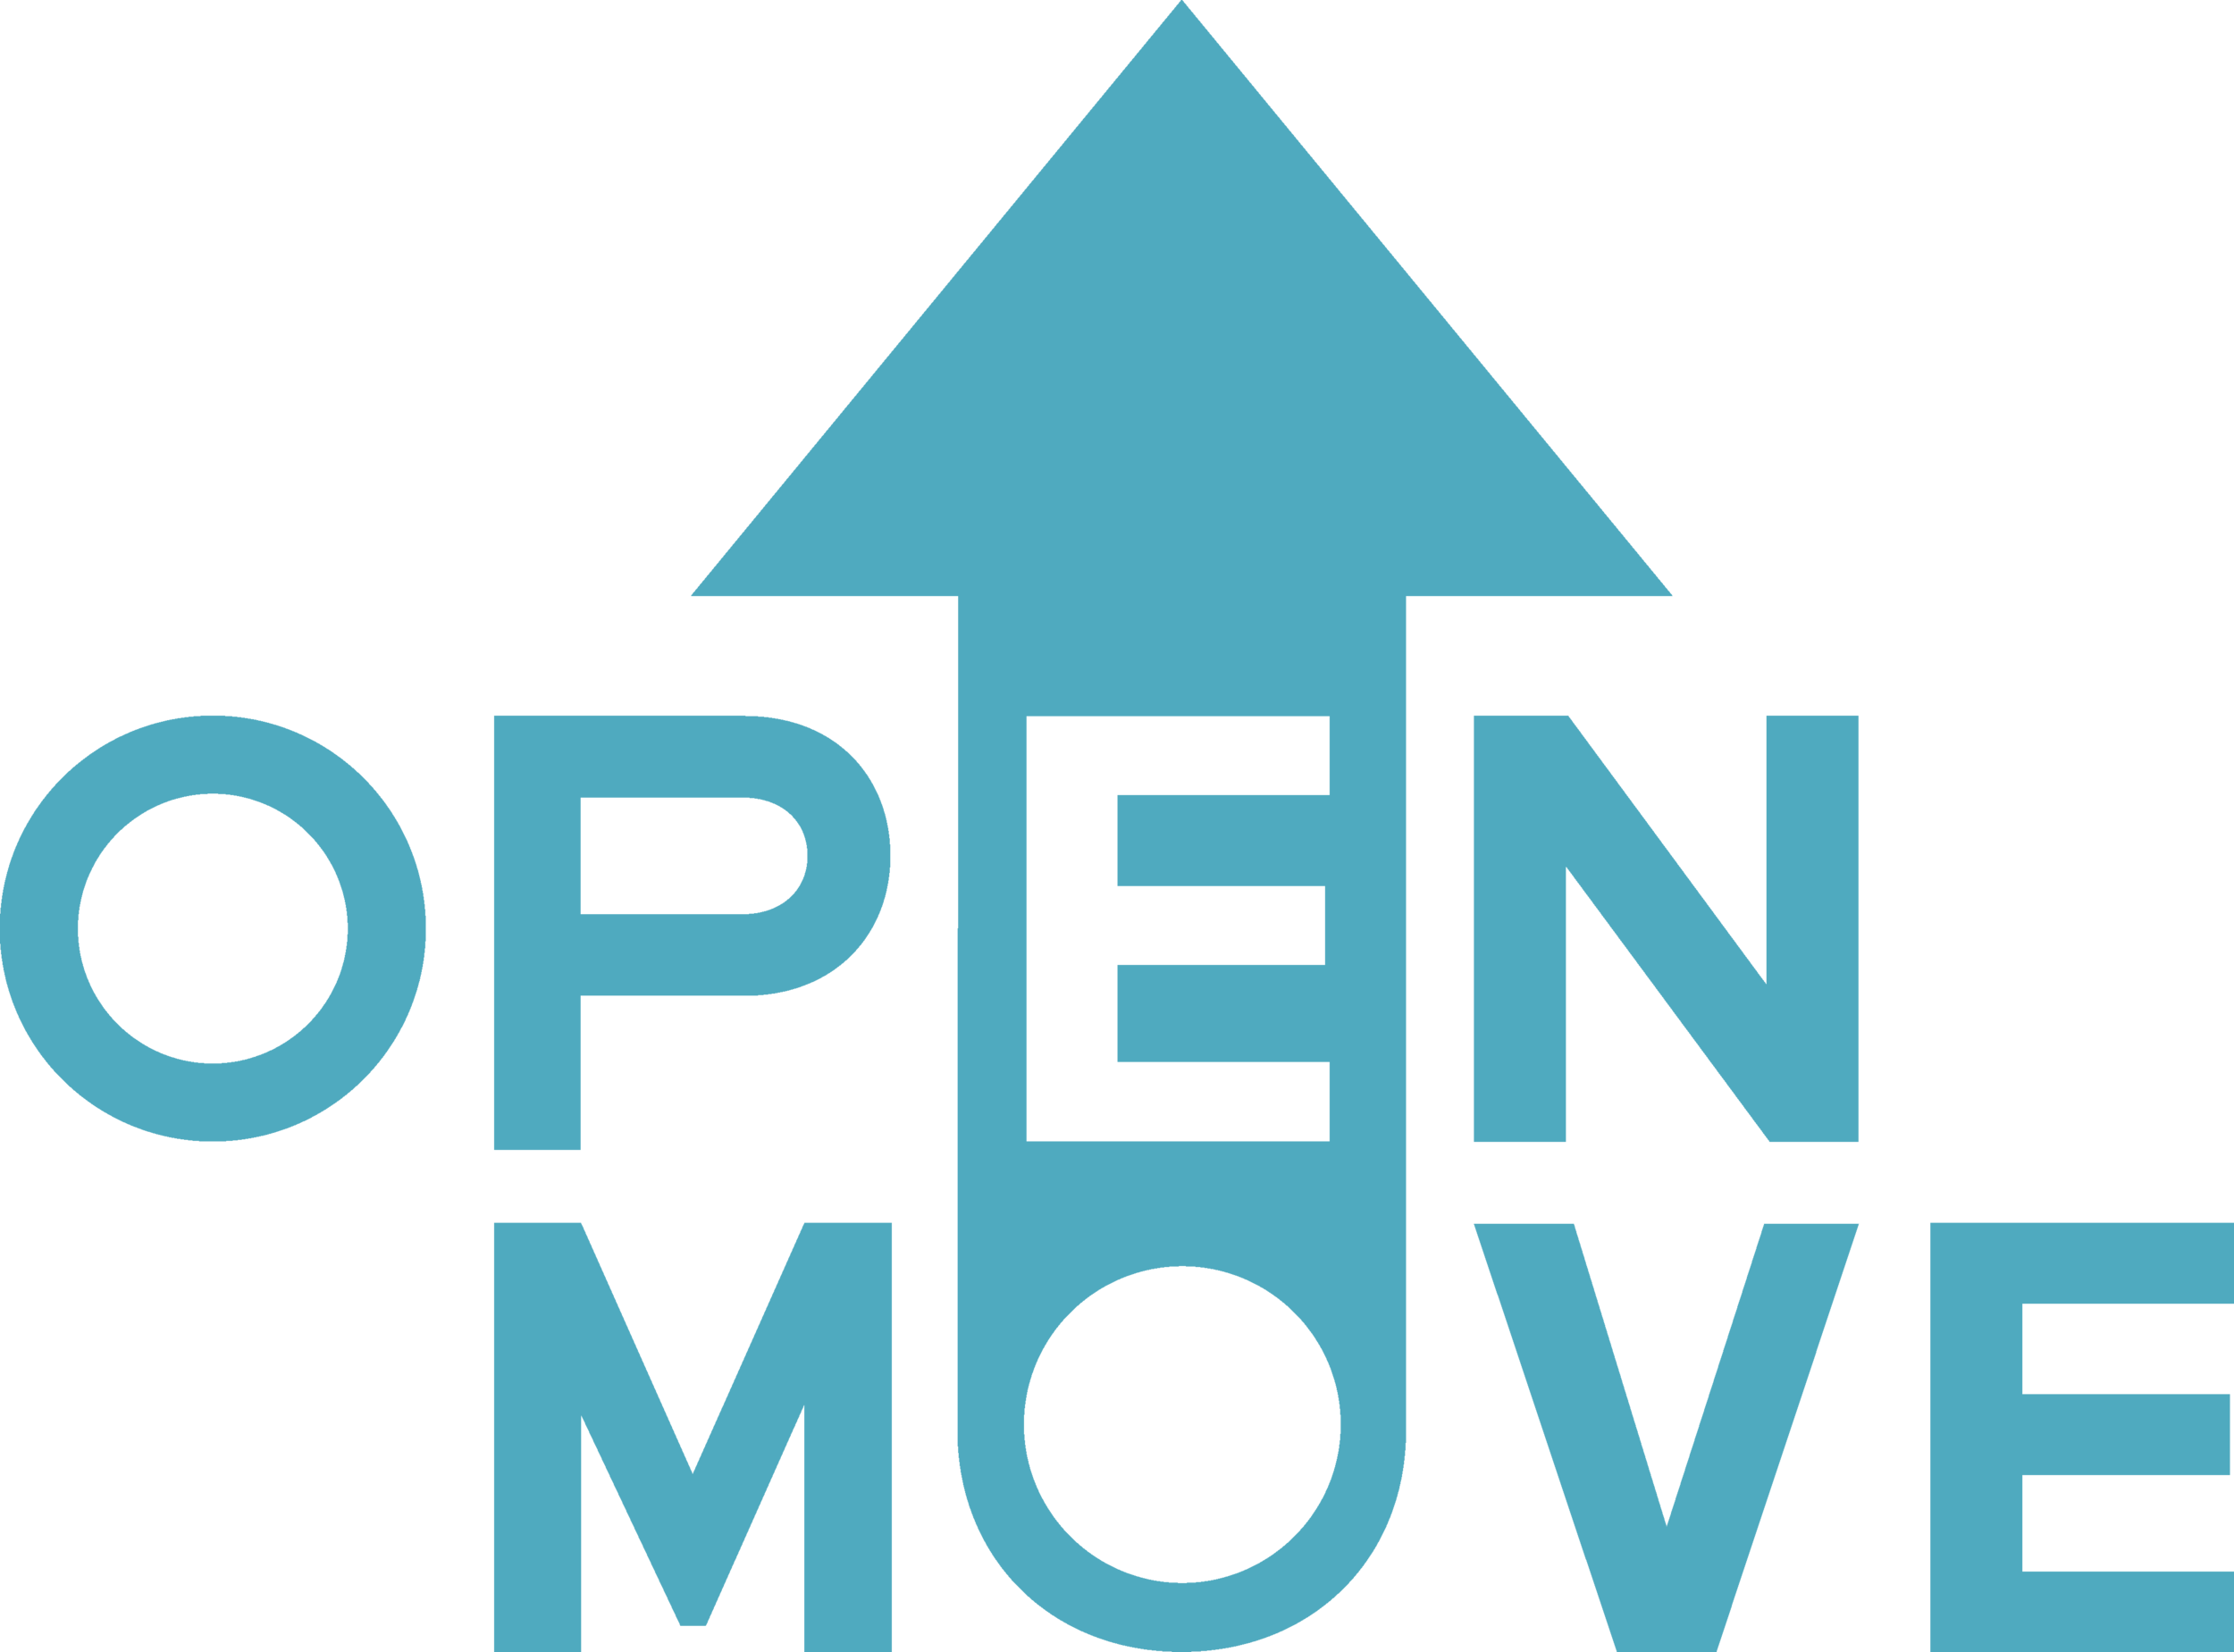 OpenMove logo.png